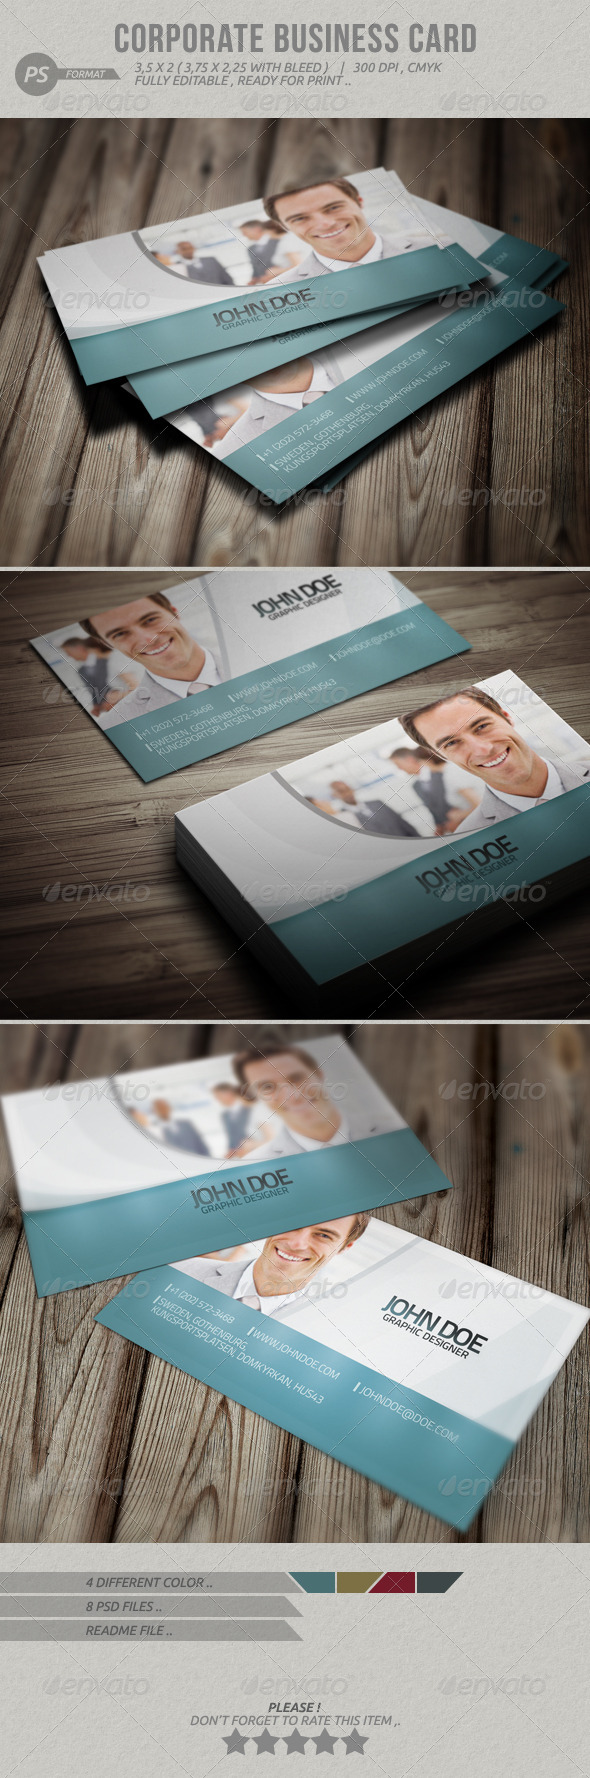 GraphicRiver Corporate Business Card 4066303